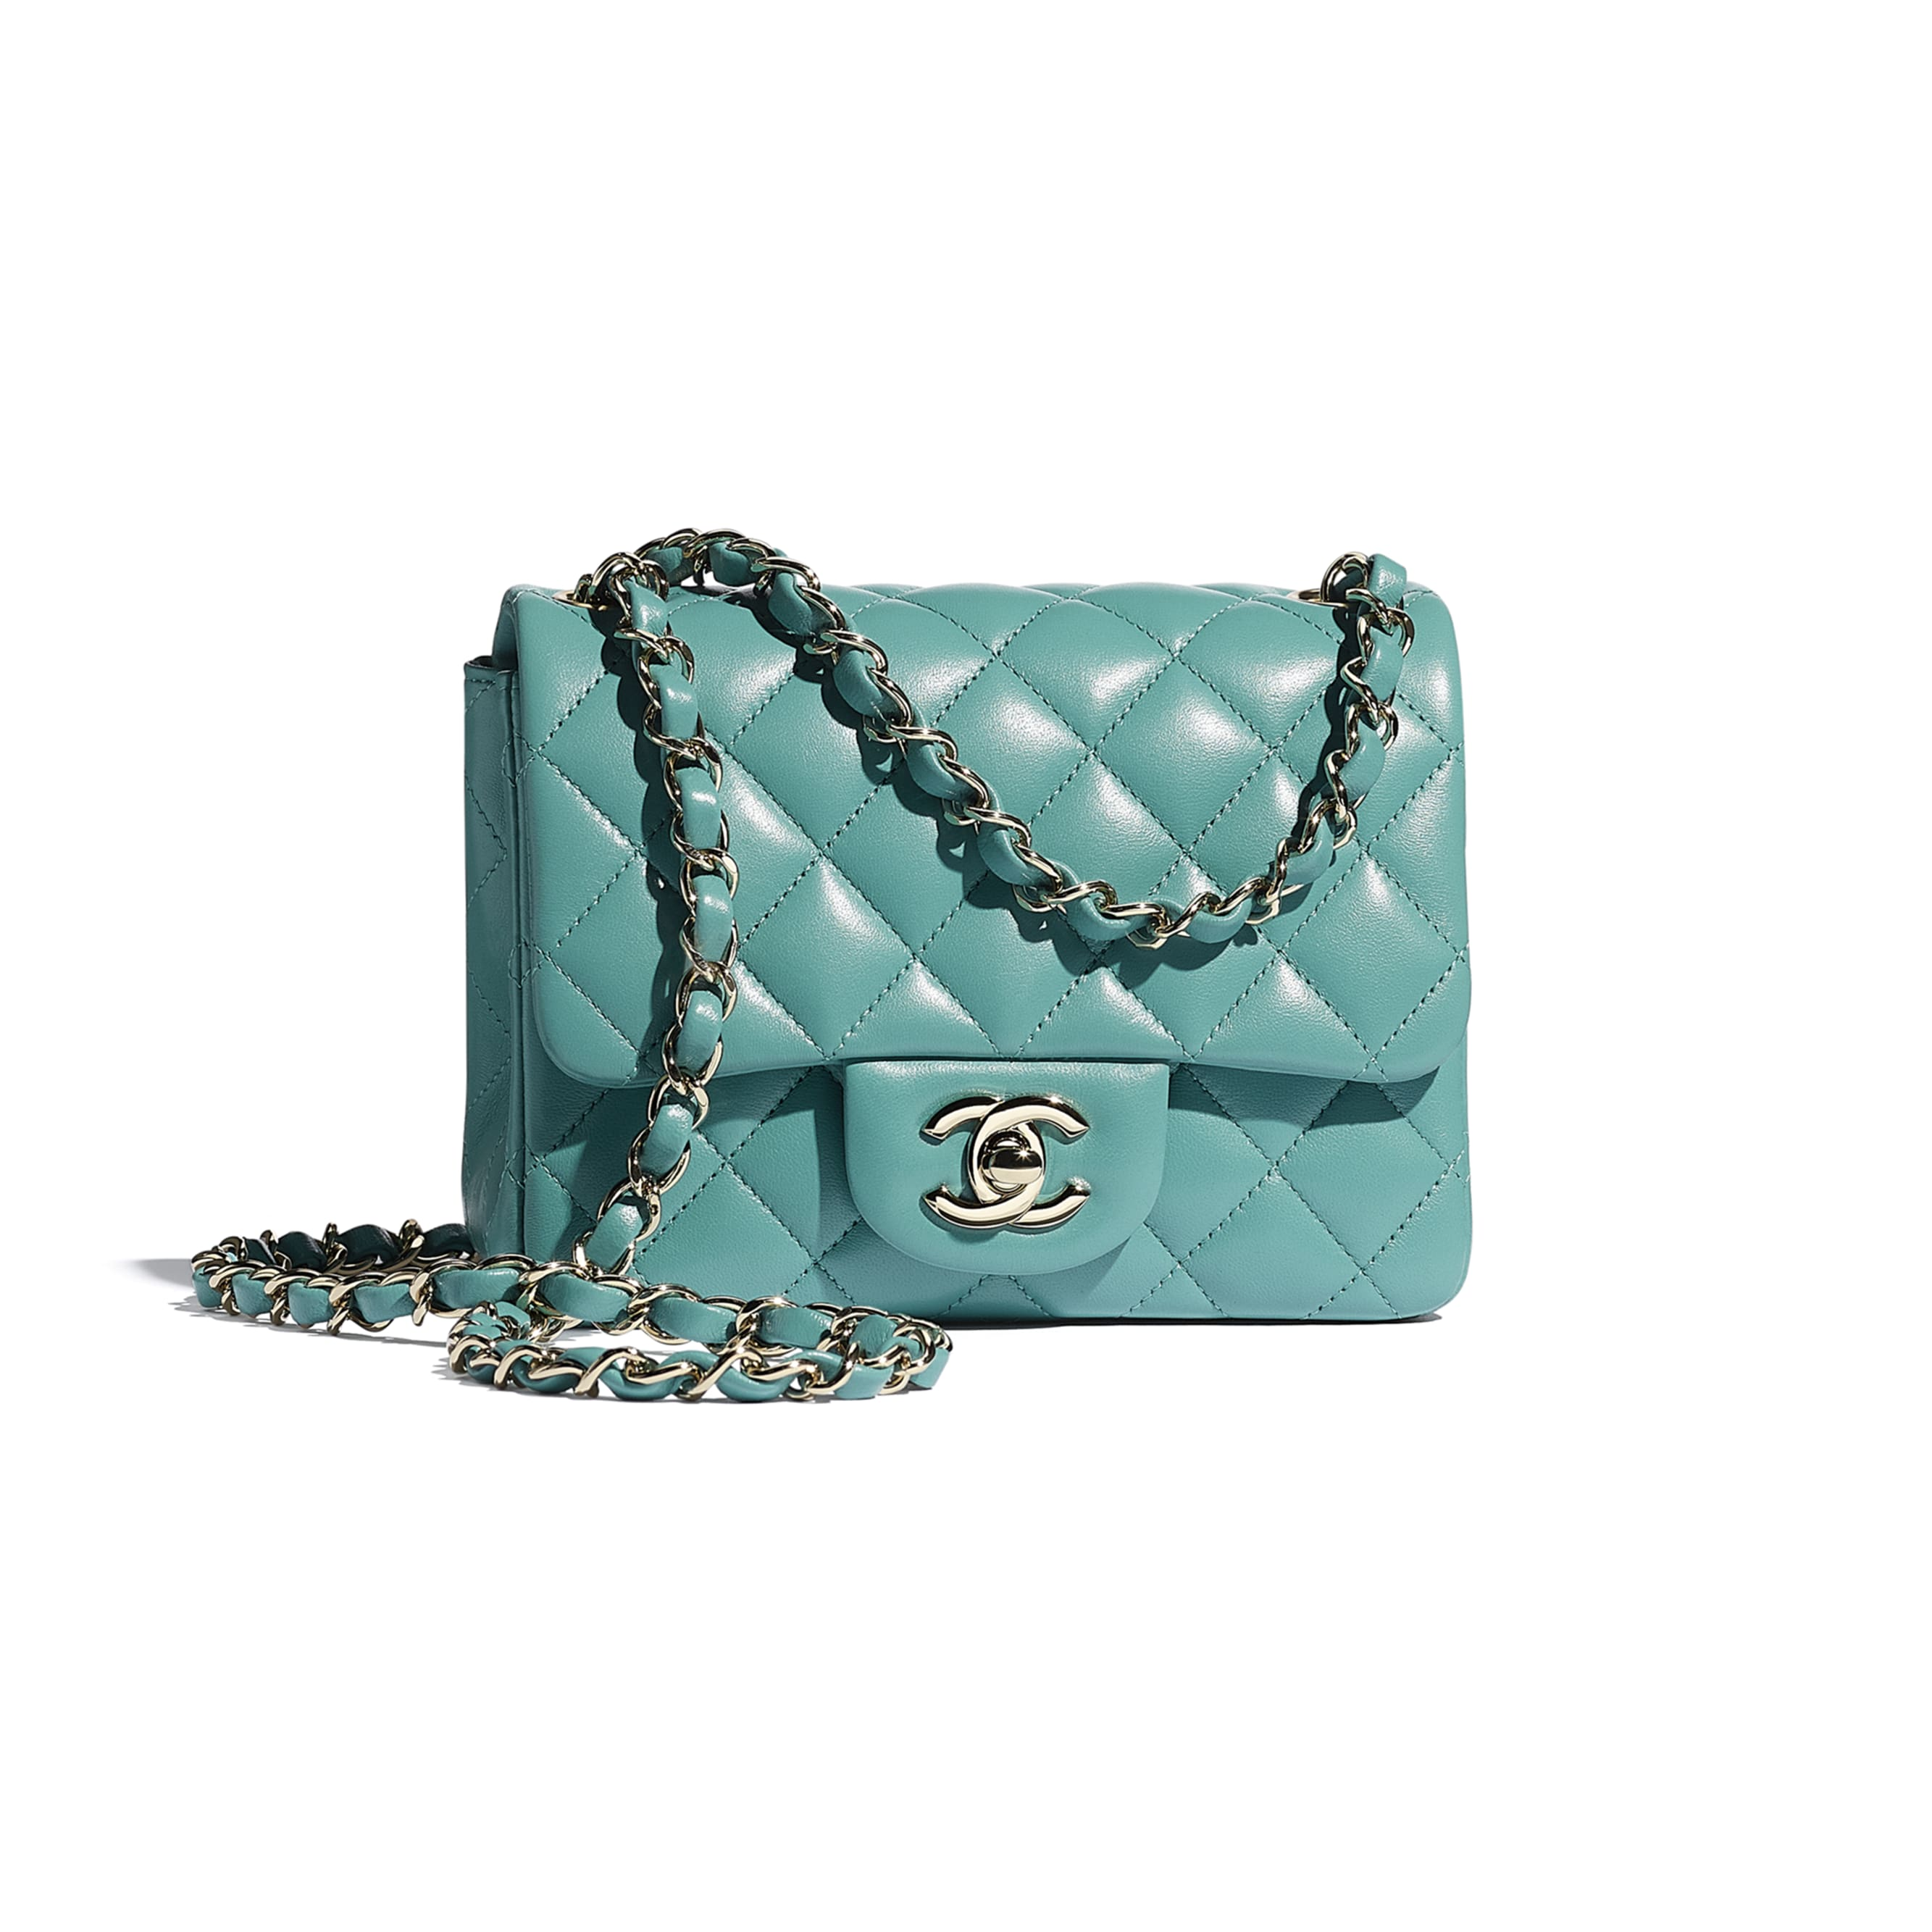 Mini Flap Bag - Green - Lambskin - CHANEL - Default view - see standard sized version